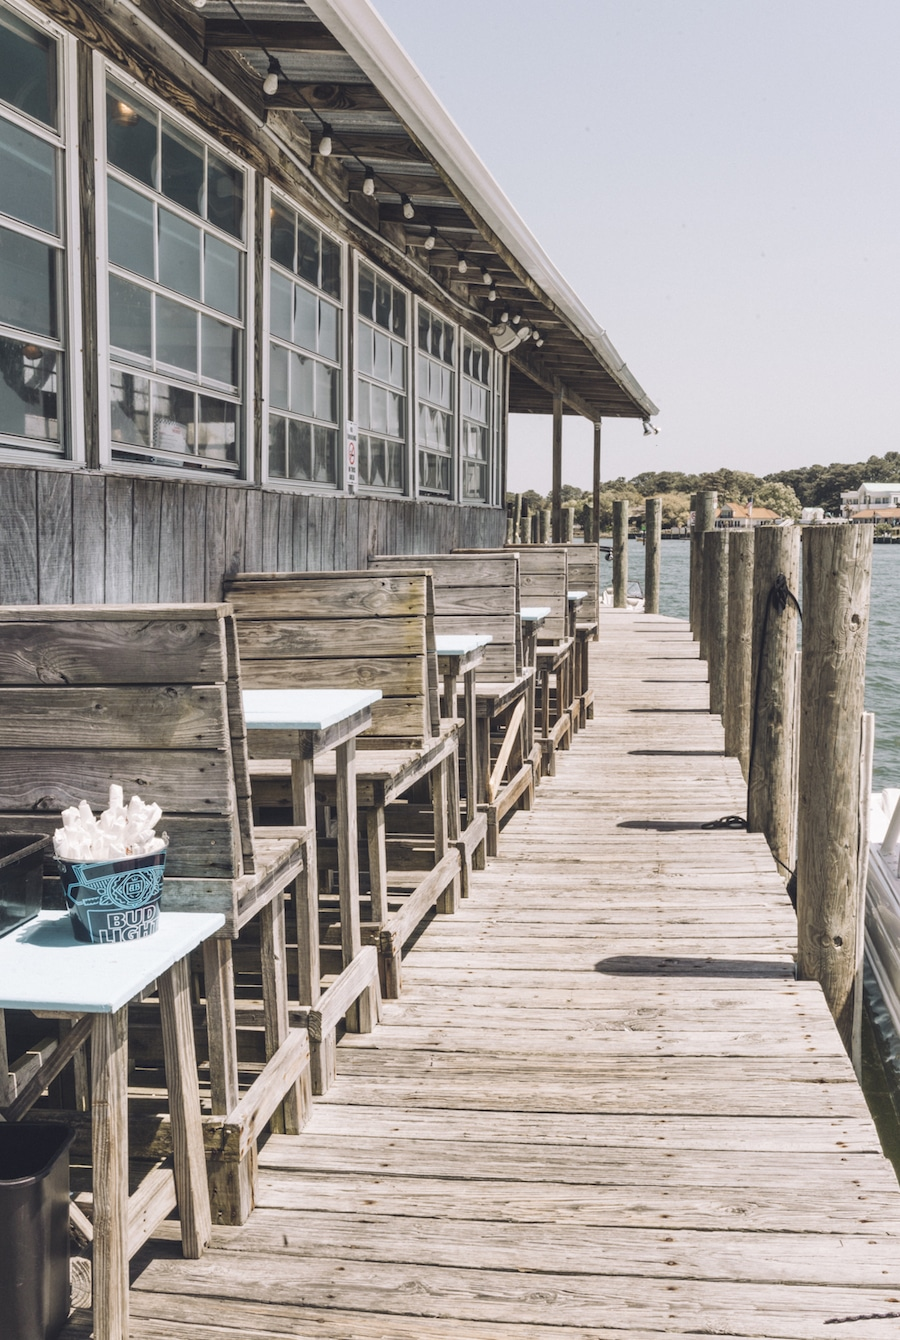 Why A Weekend Getaway In Virginia Beach Needs To Be On Your Travel Do List